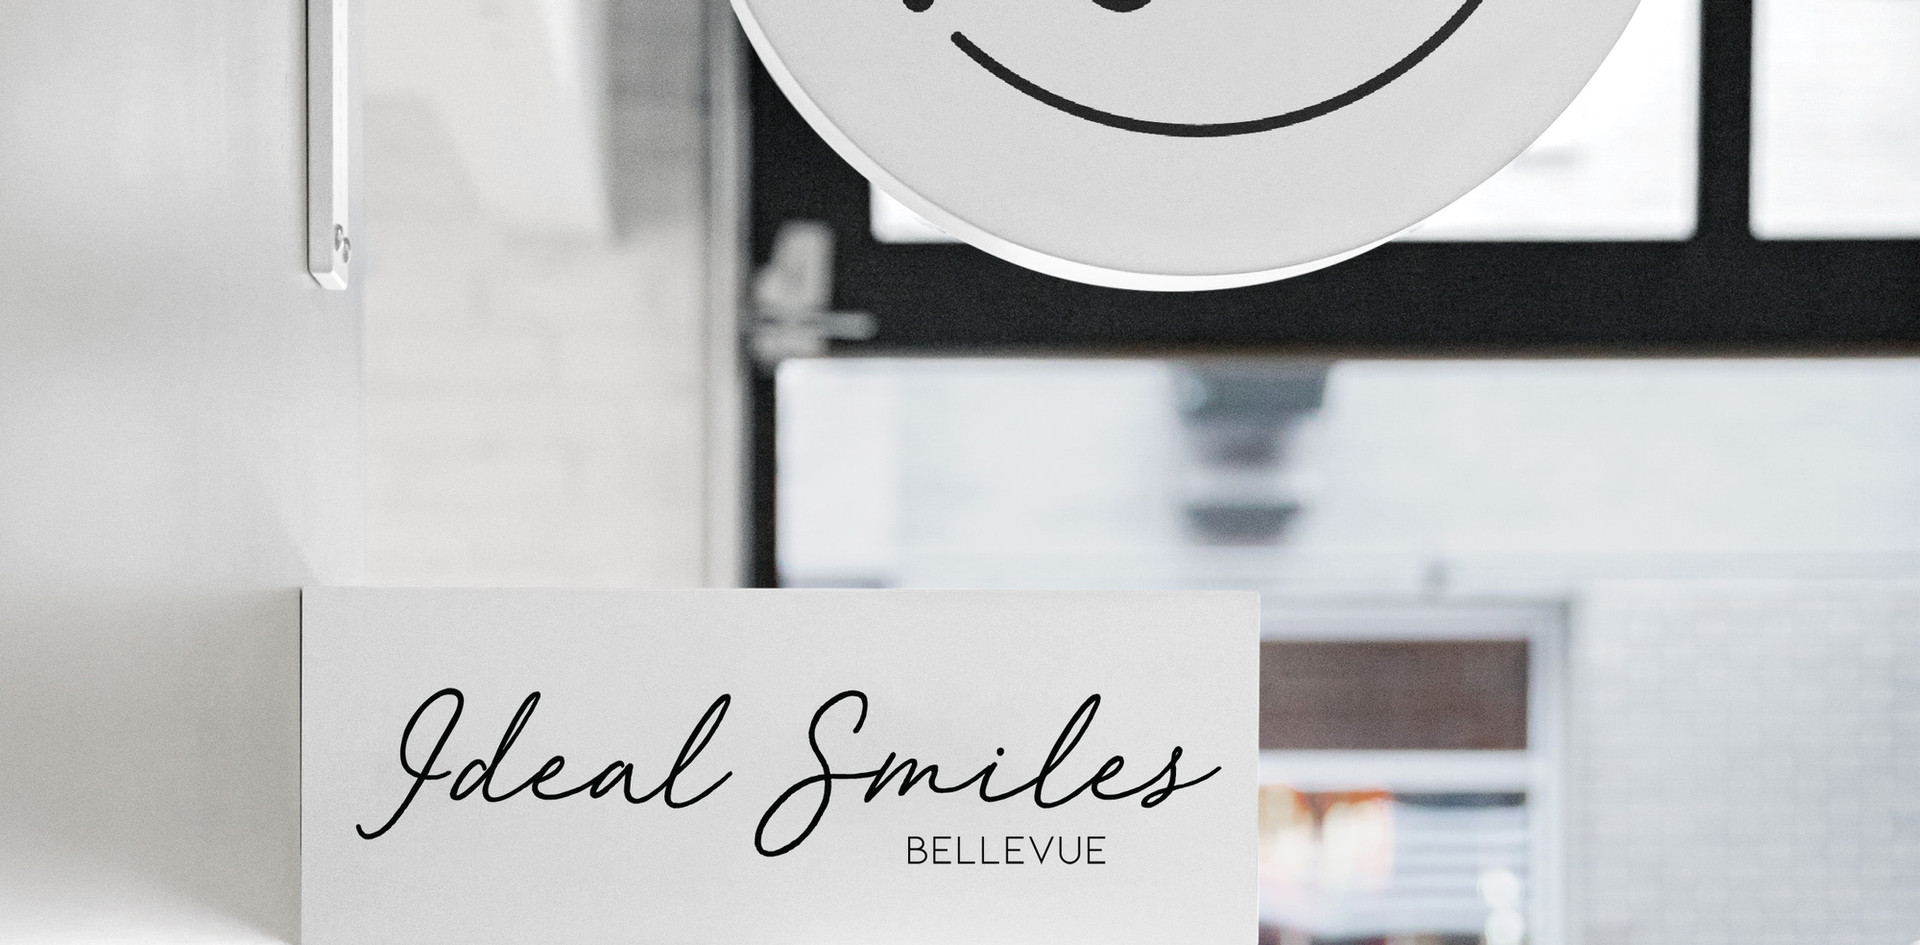 Ideal Smiles Dental Logo